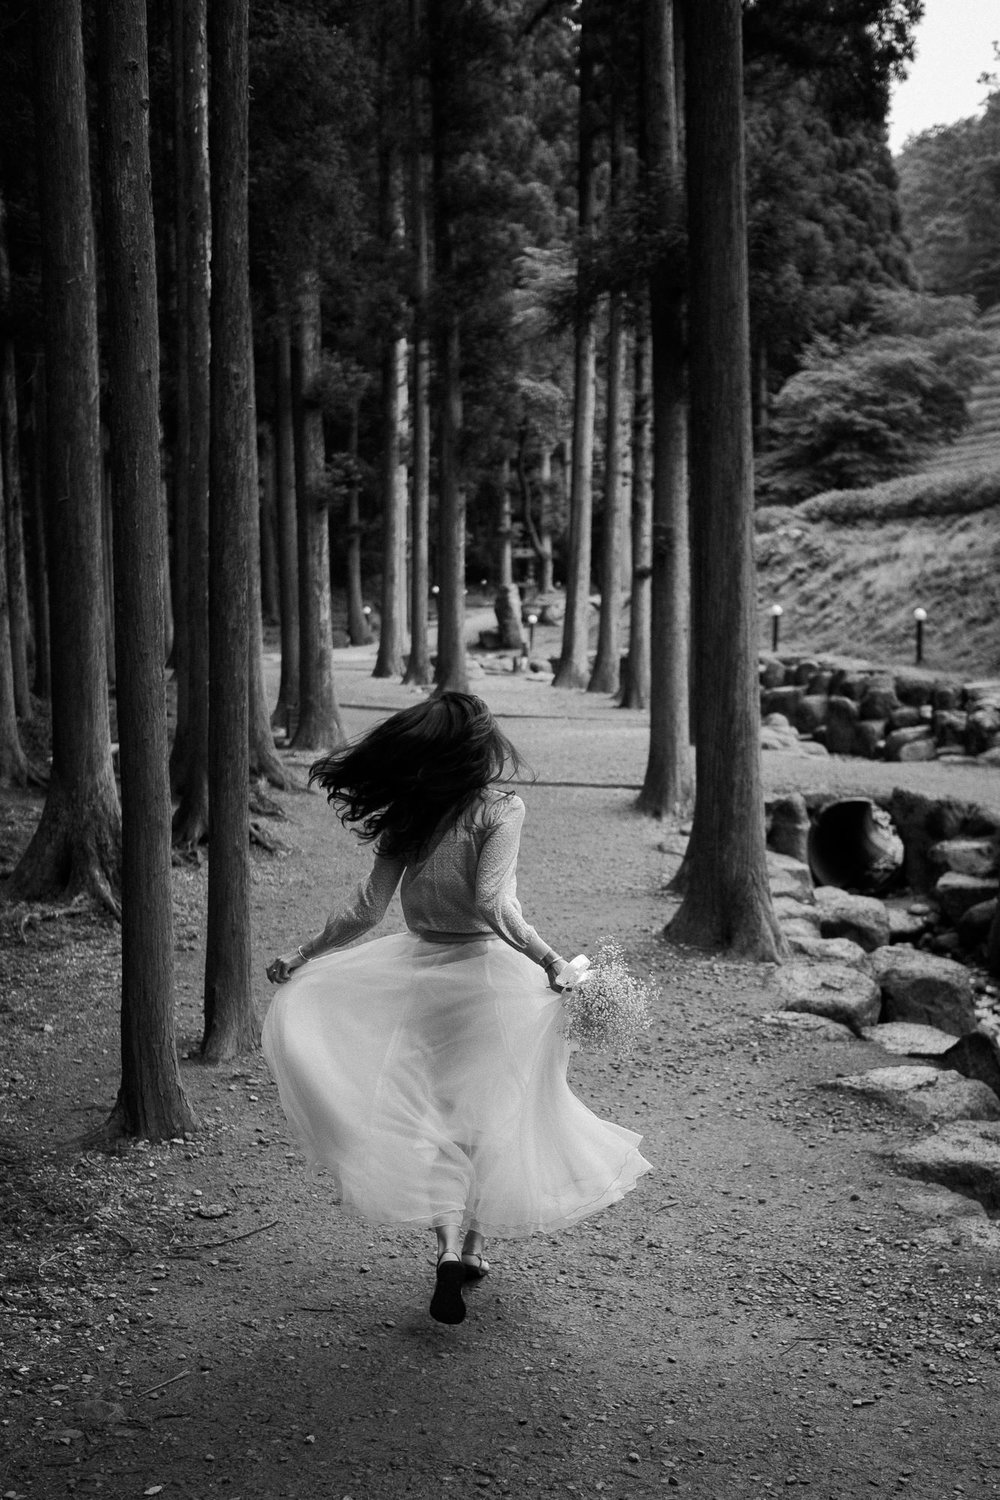 running-blackandwhite-travel-girl.jpg